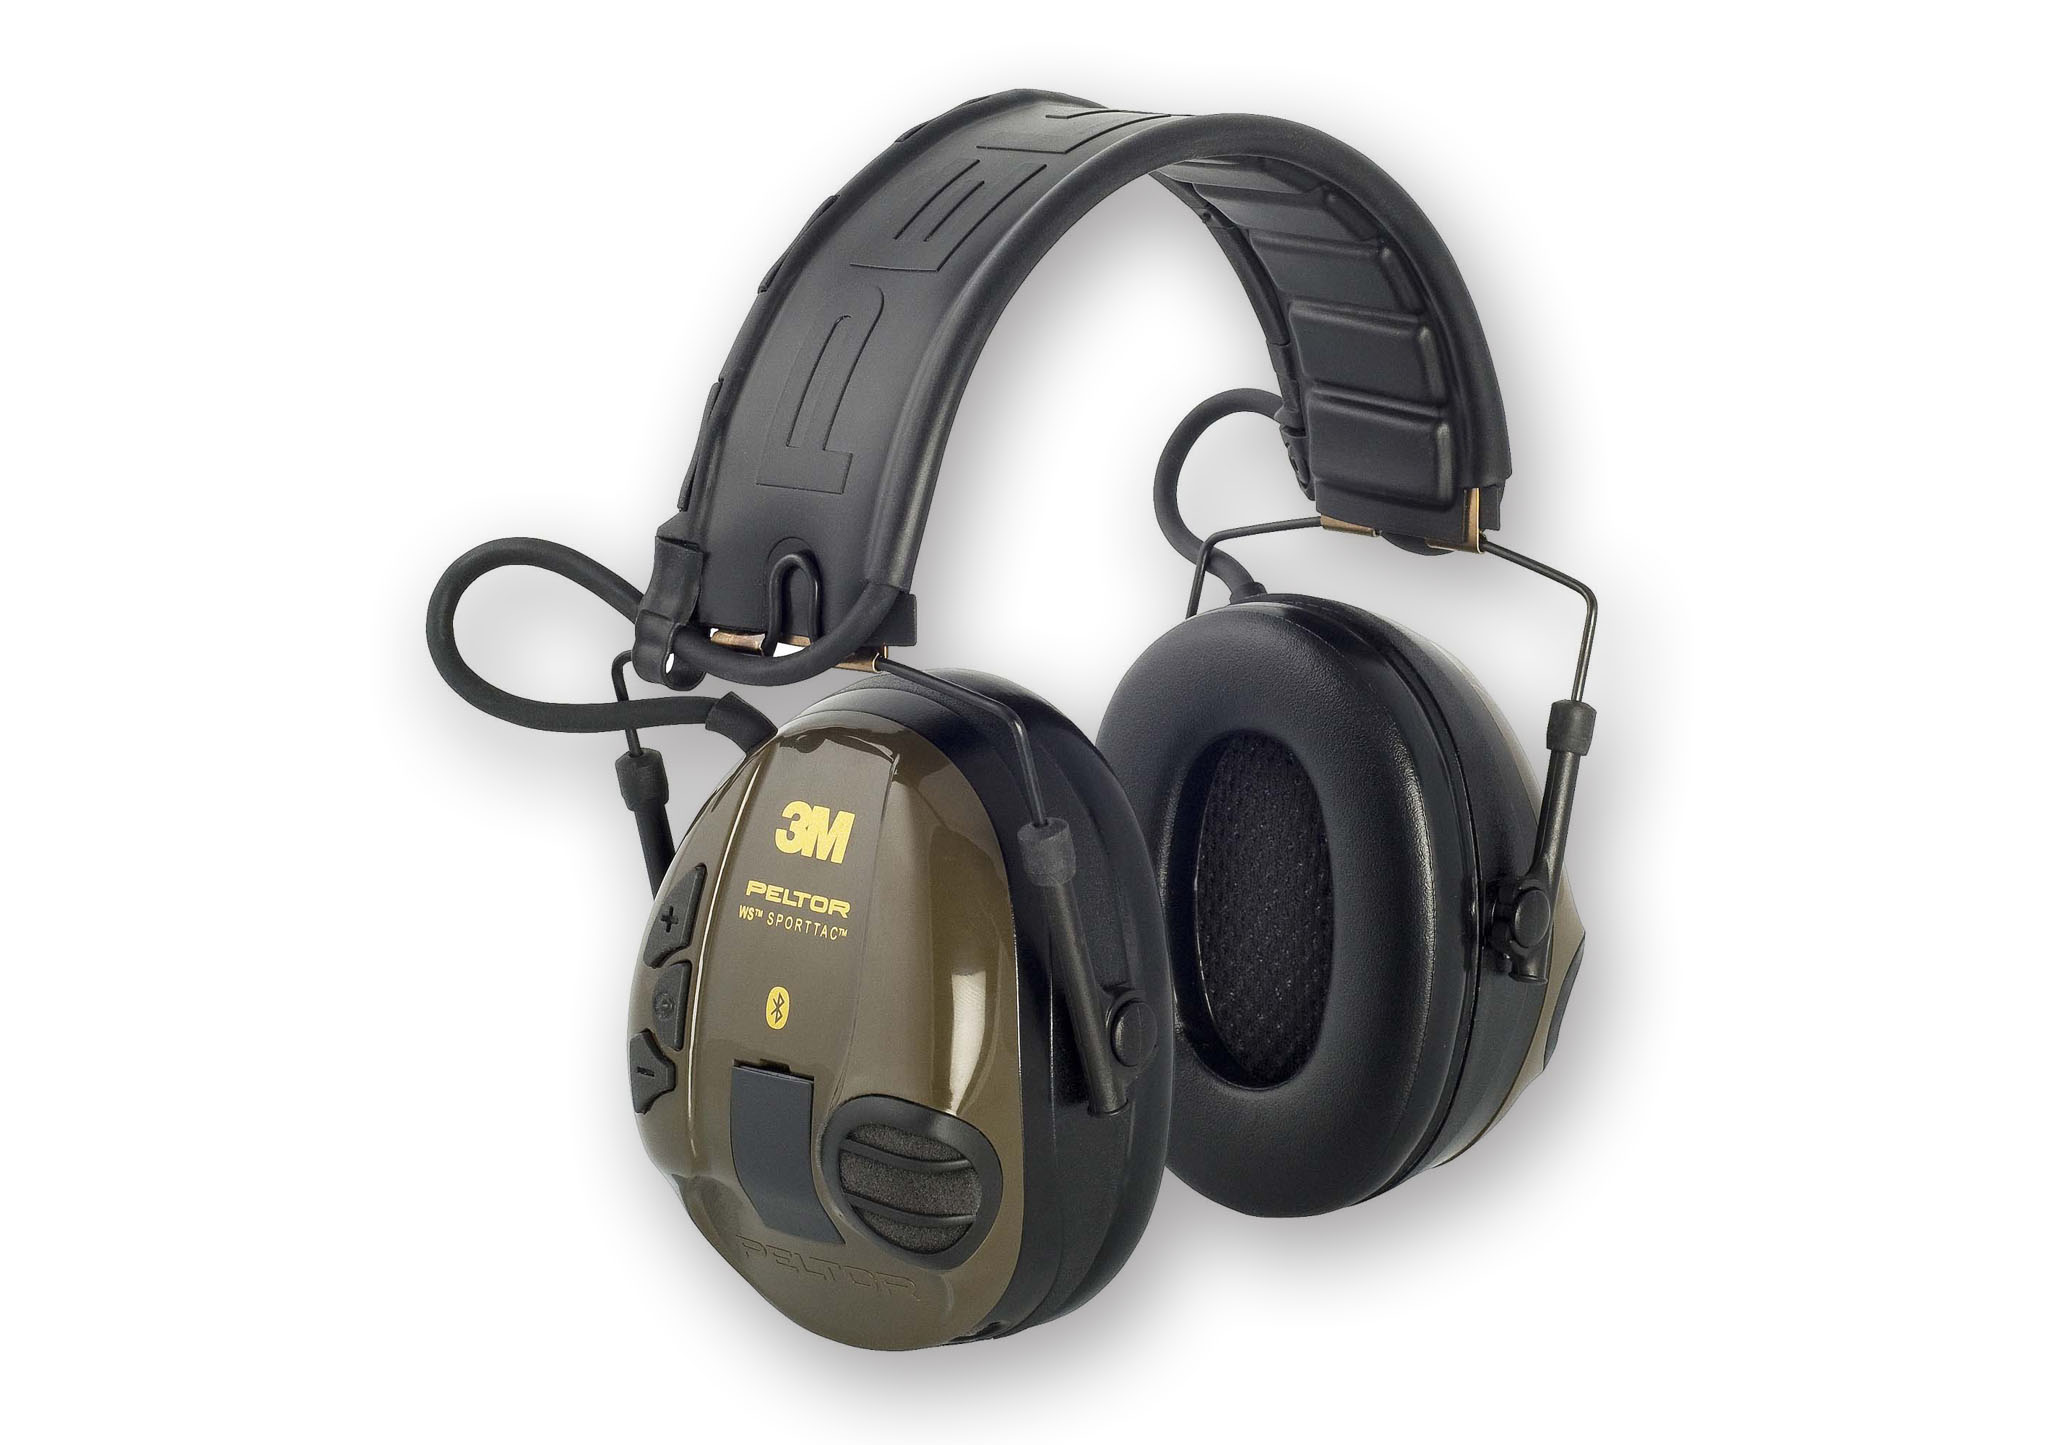 Peltor Tactical sport Ear Defenders